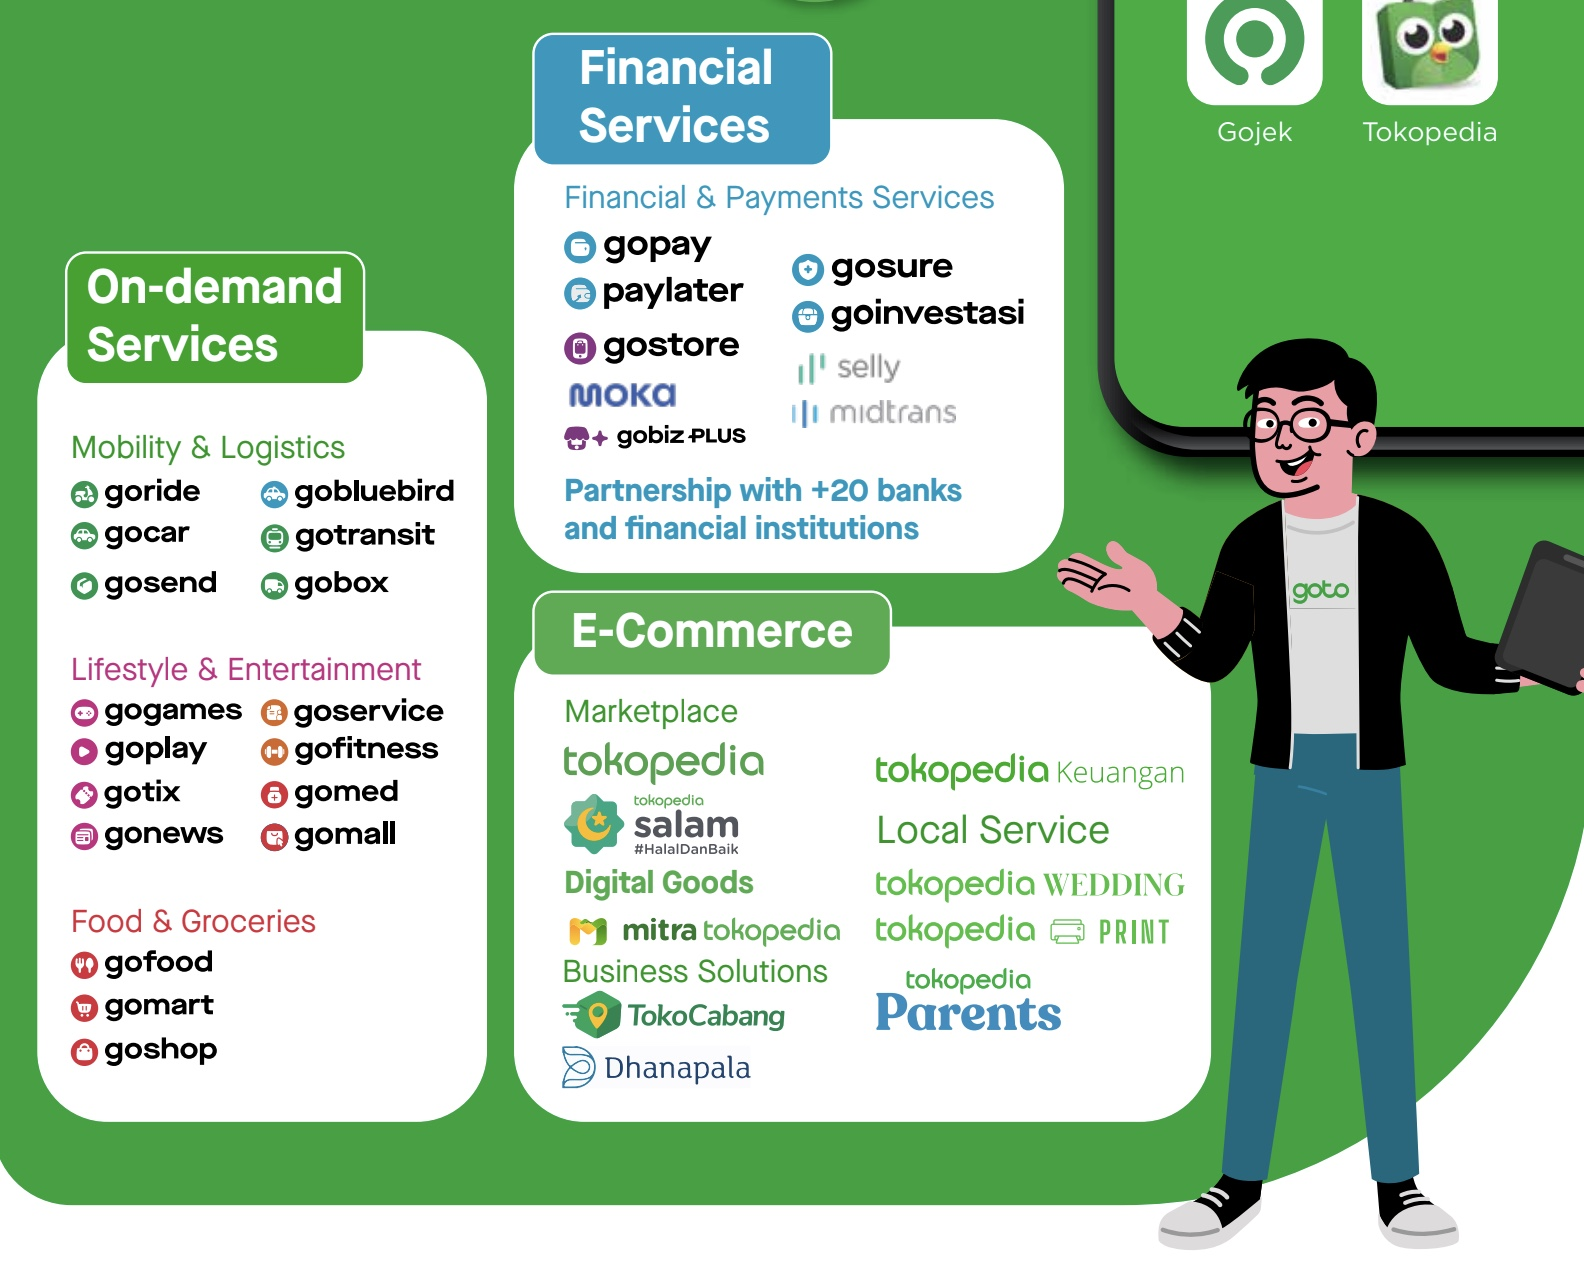 What the GoJek and Tokopedia Merger means for Small Businesses